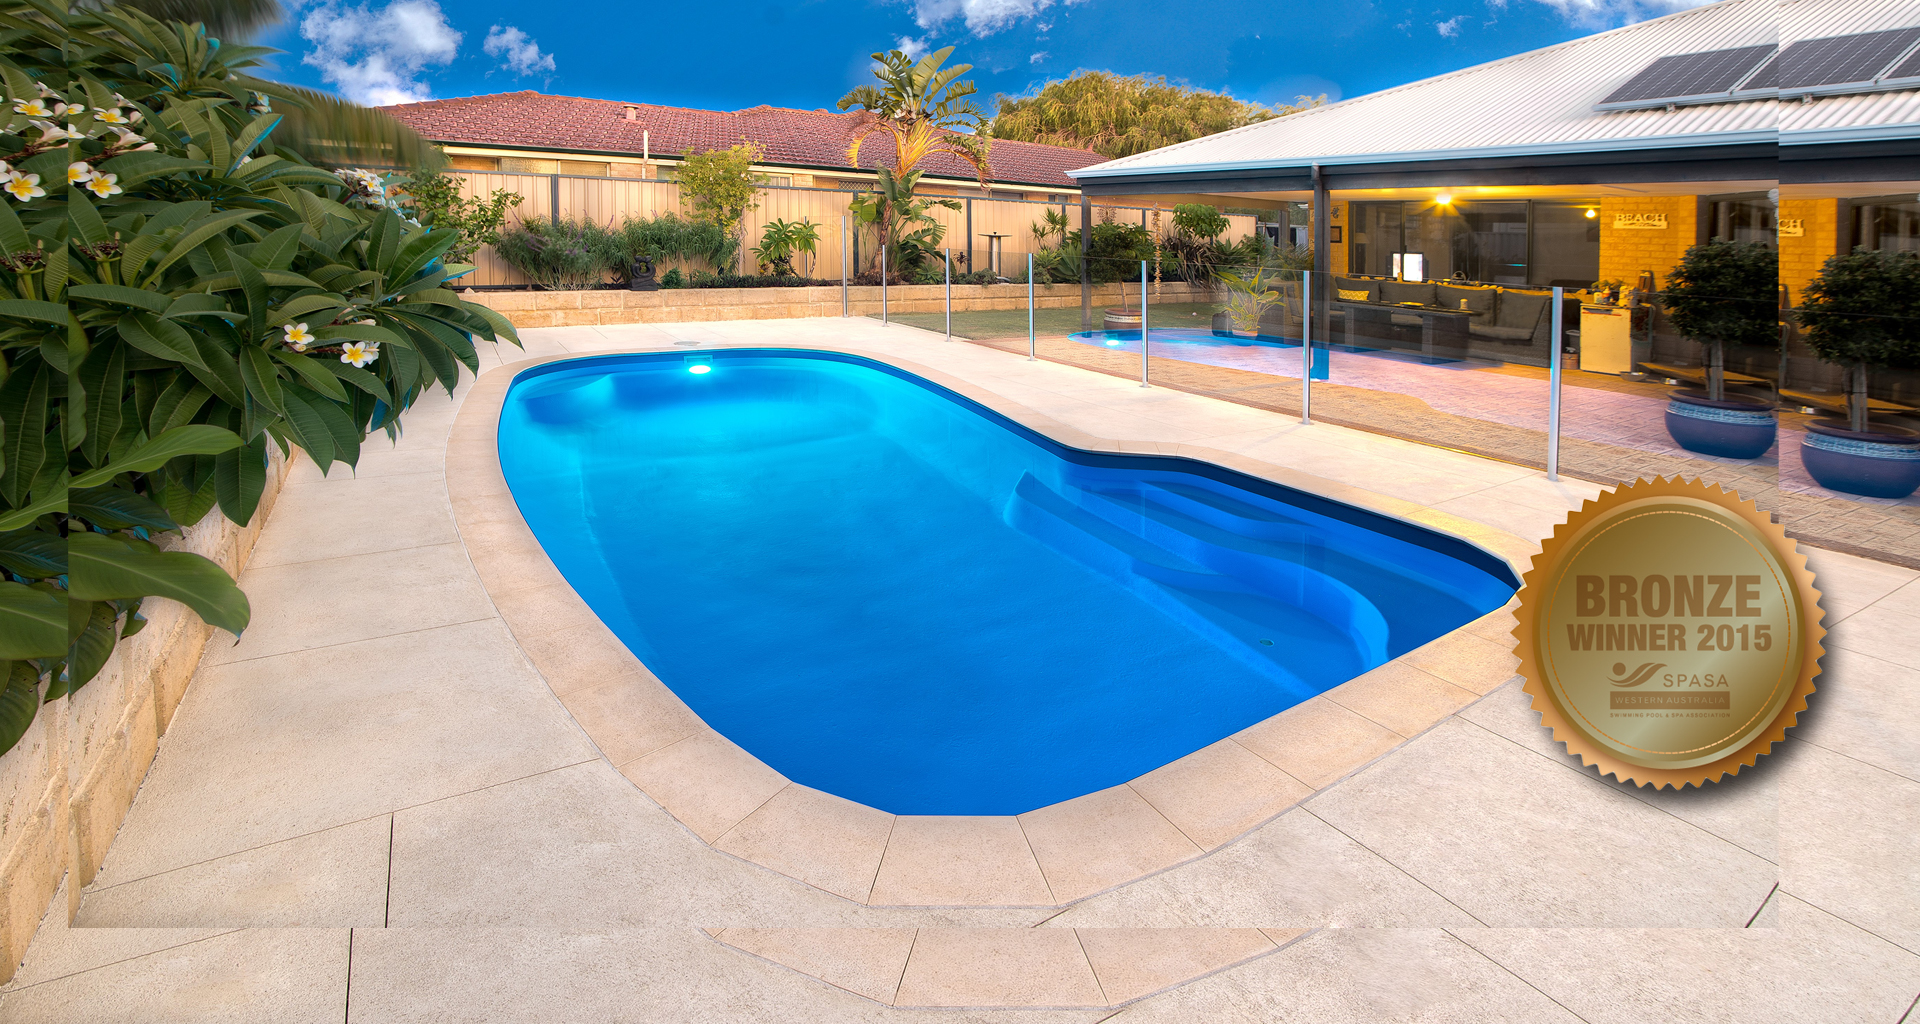 Palm City Pools Bronze Award3 2015